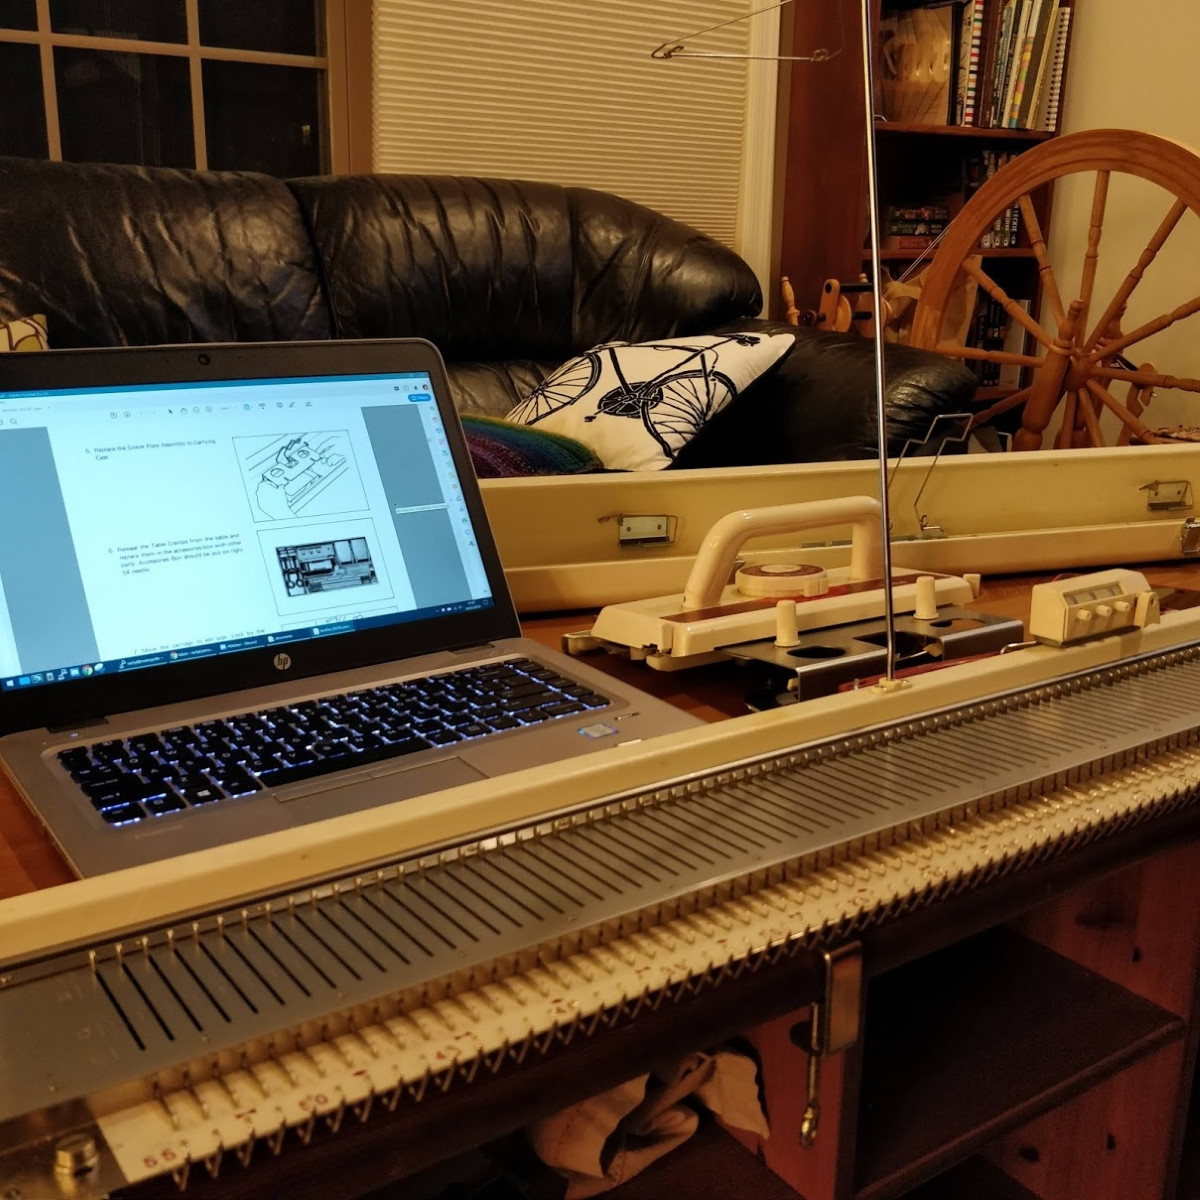 The knitting machine on my coffee table, with my laptop behind it. The user manual is displayed on the laptop screen.